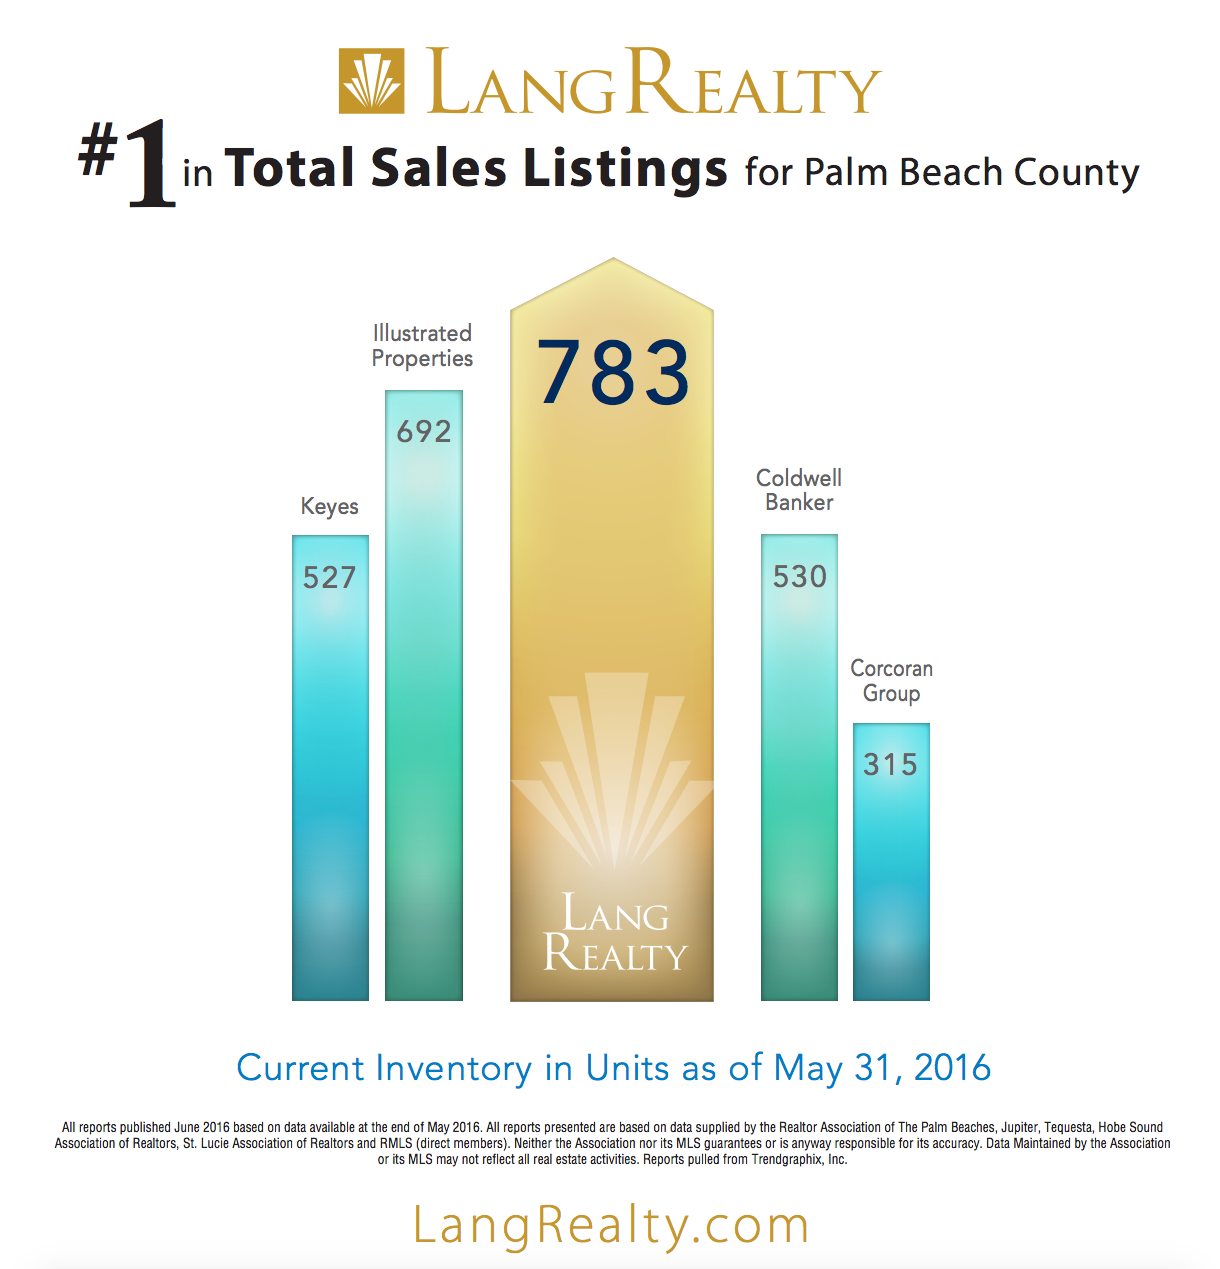 Lang Realty Dominates Palm Beach County